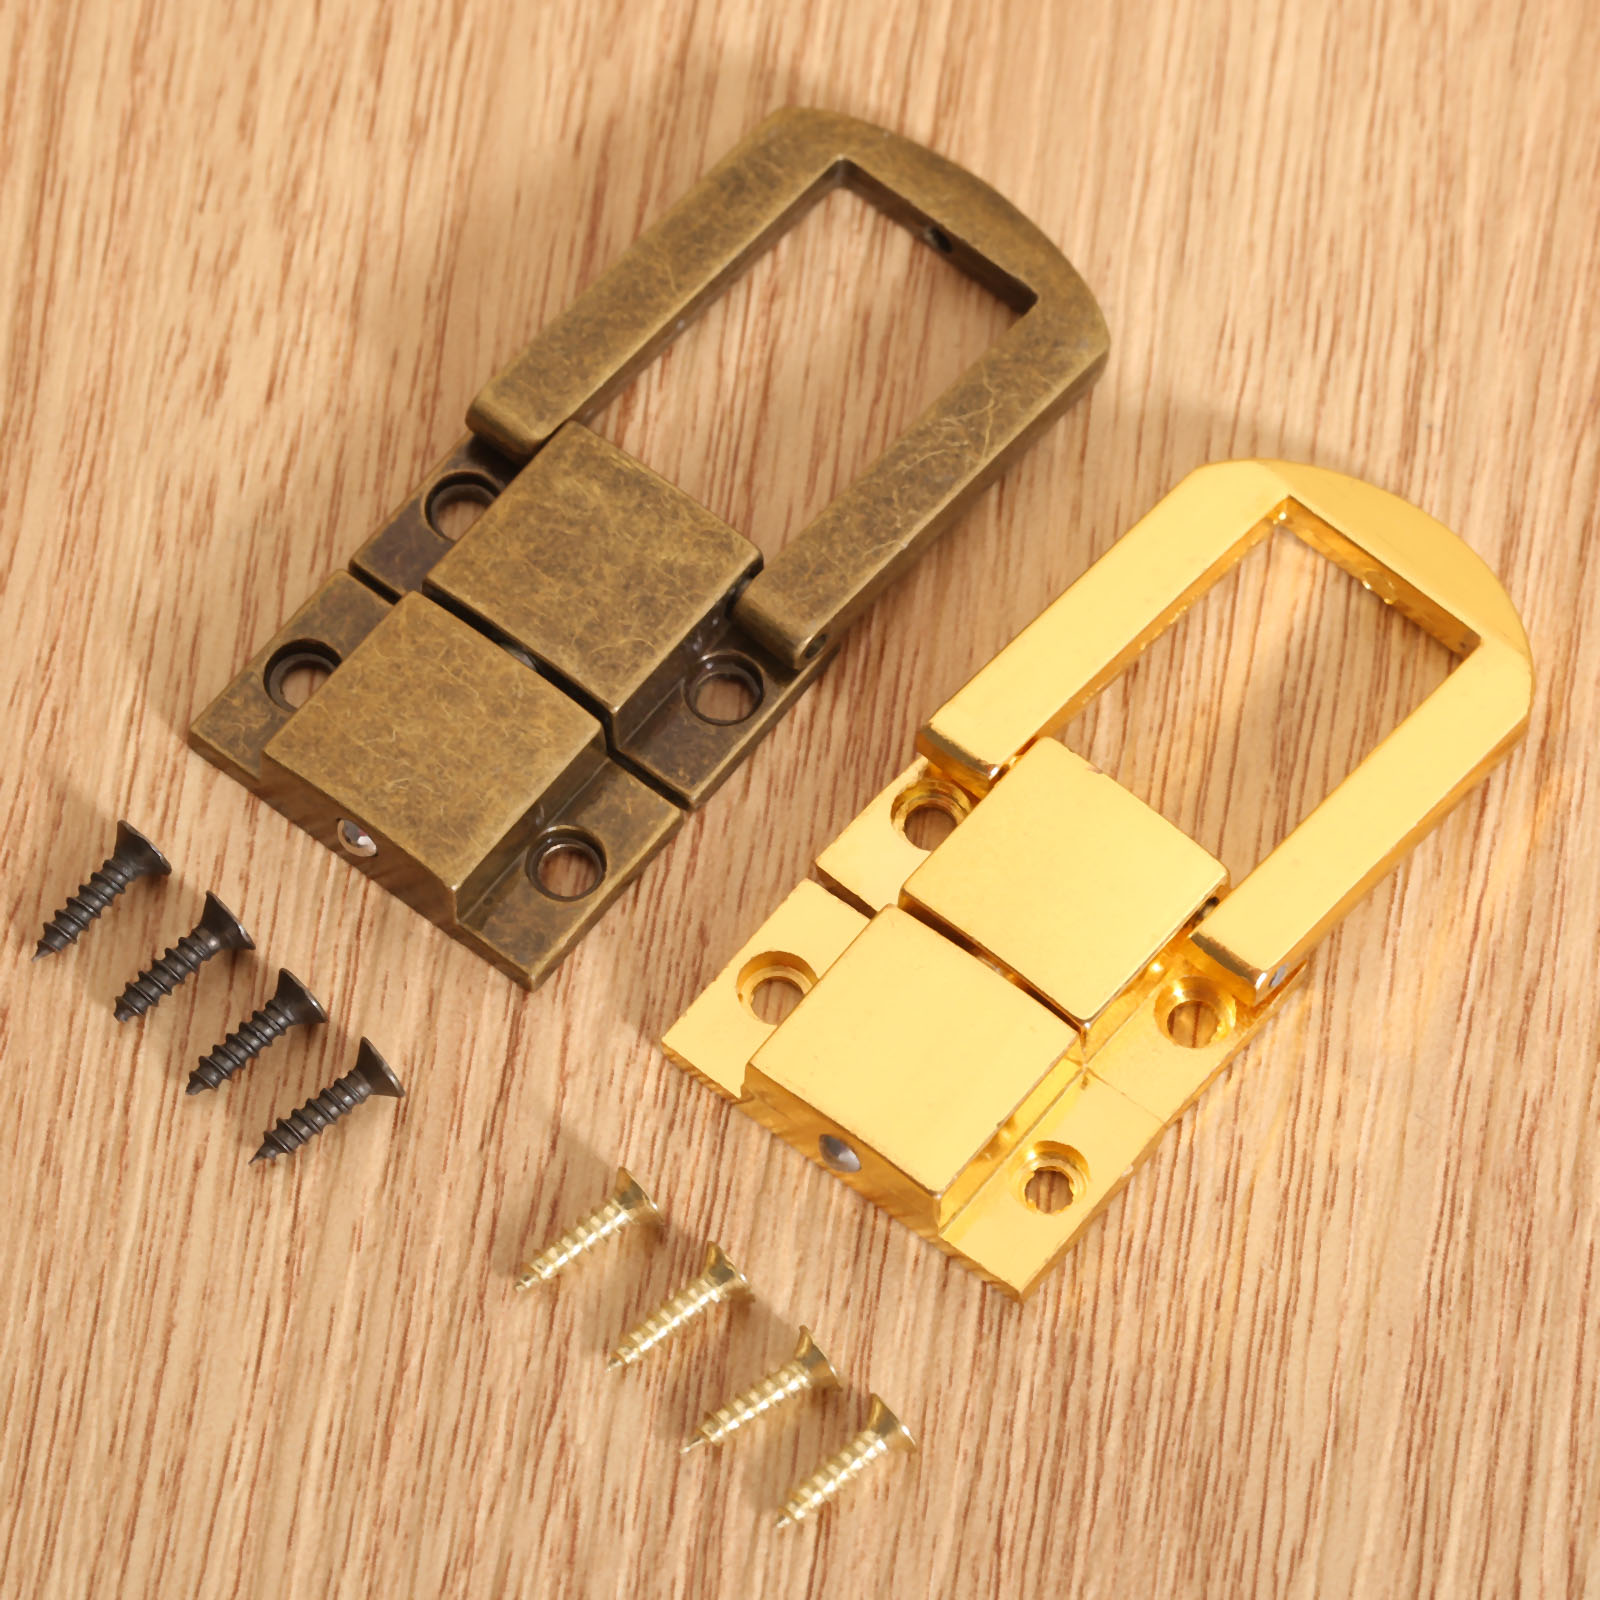 1Pc 30x24mm Antique Bronze/Gold Box Hasps Metal Lock Catch Latches For Jewelry Chest Box Suitcase Buckle Clasp Vintage Hardware